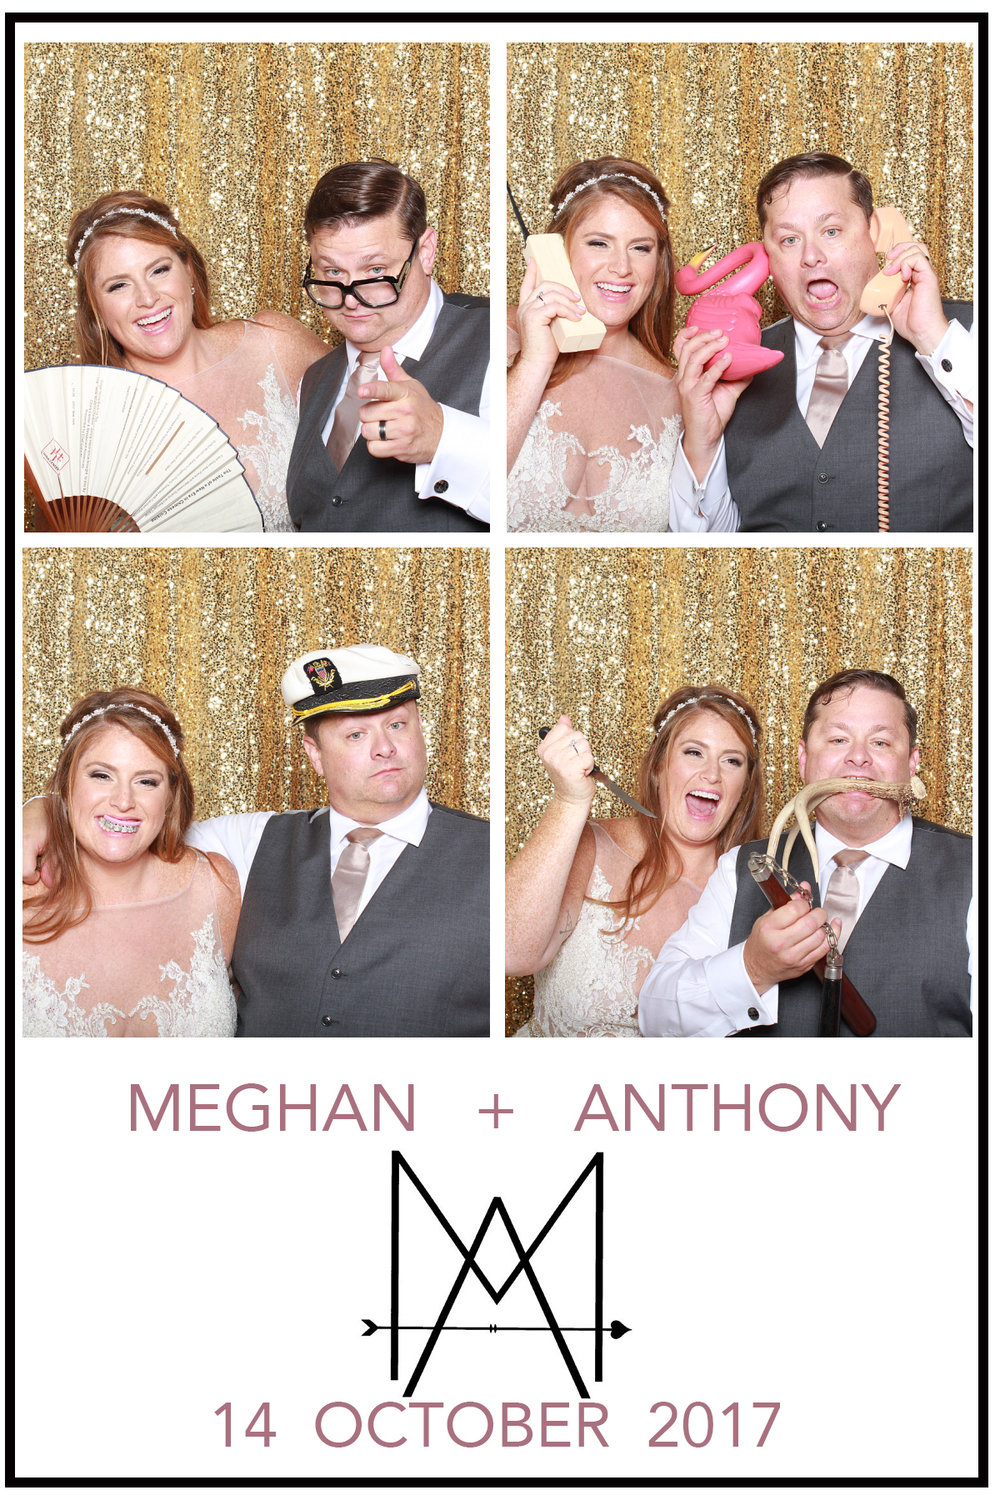 Meghan and Anthony October 14th 2017